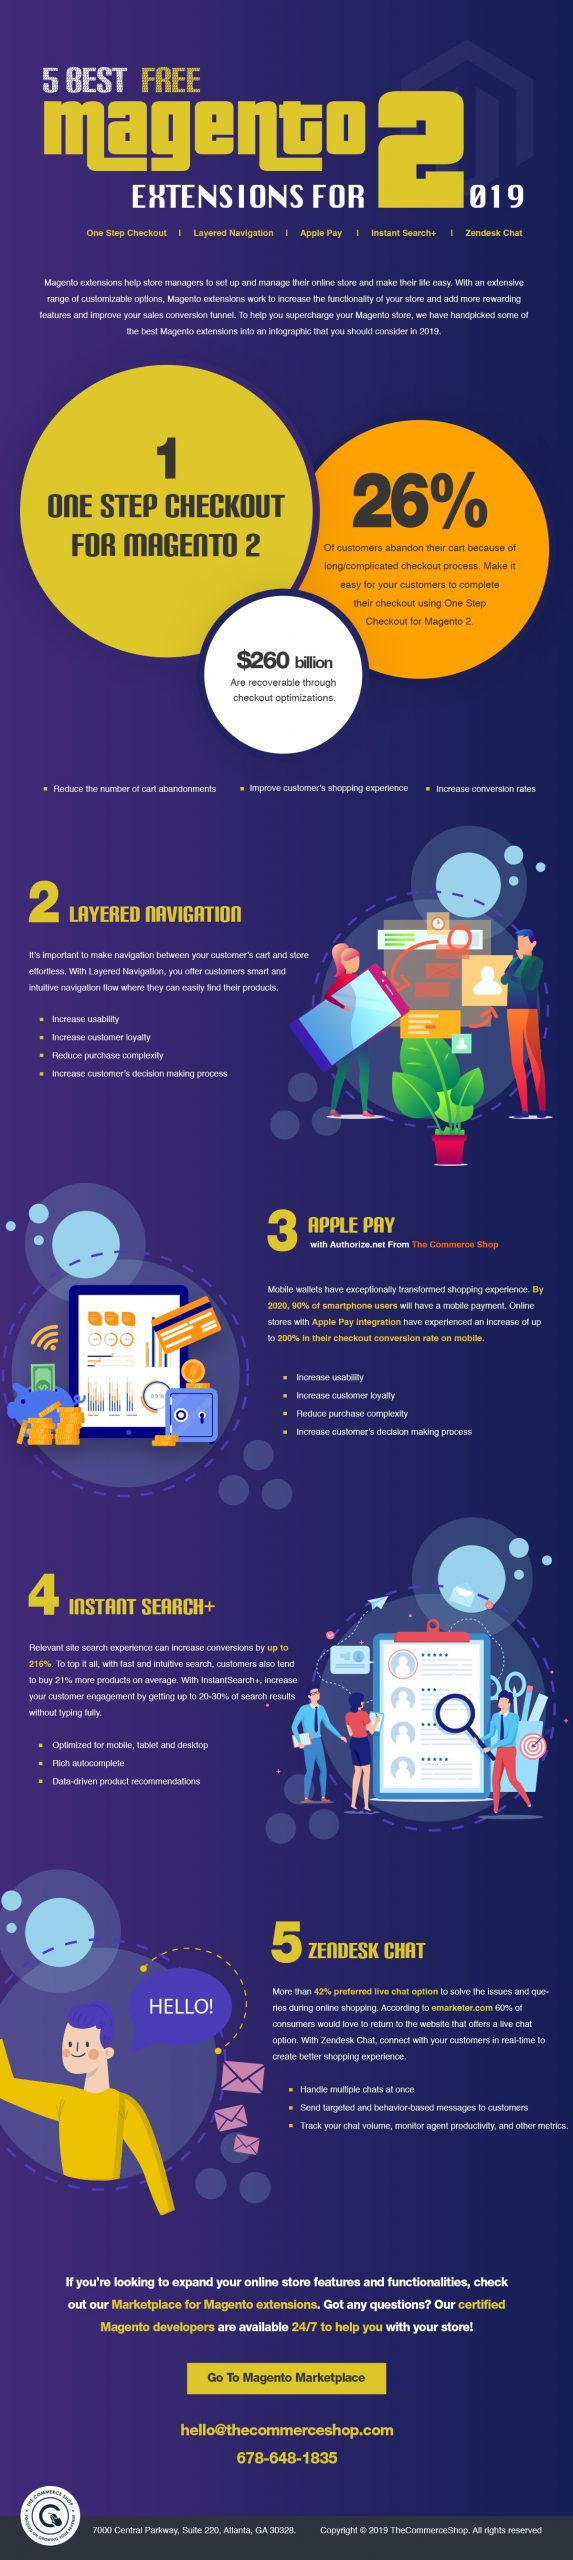 5 Best Free Magento 2 Extensions For 2019 # Infographic